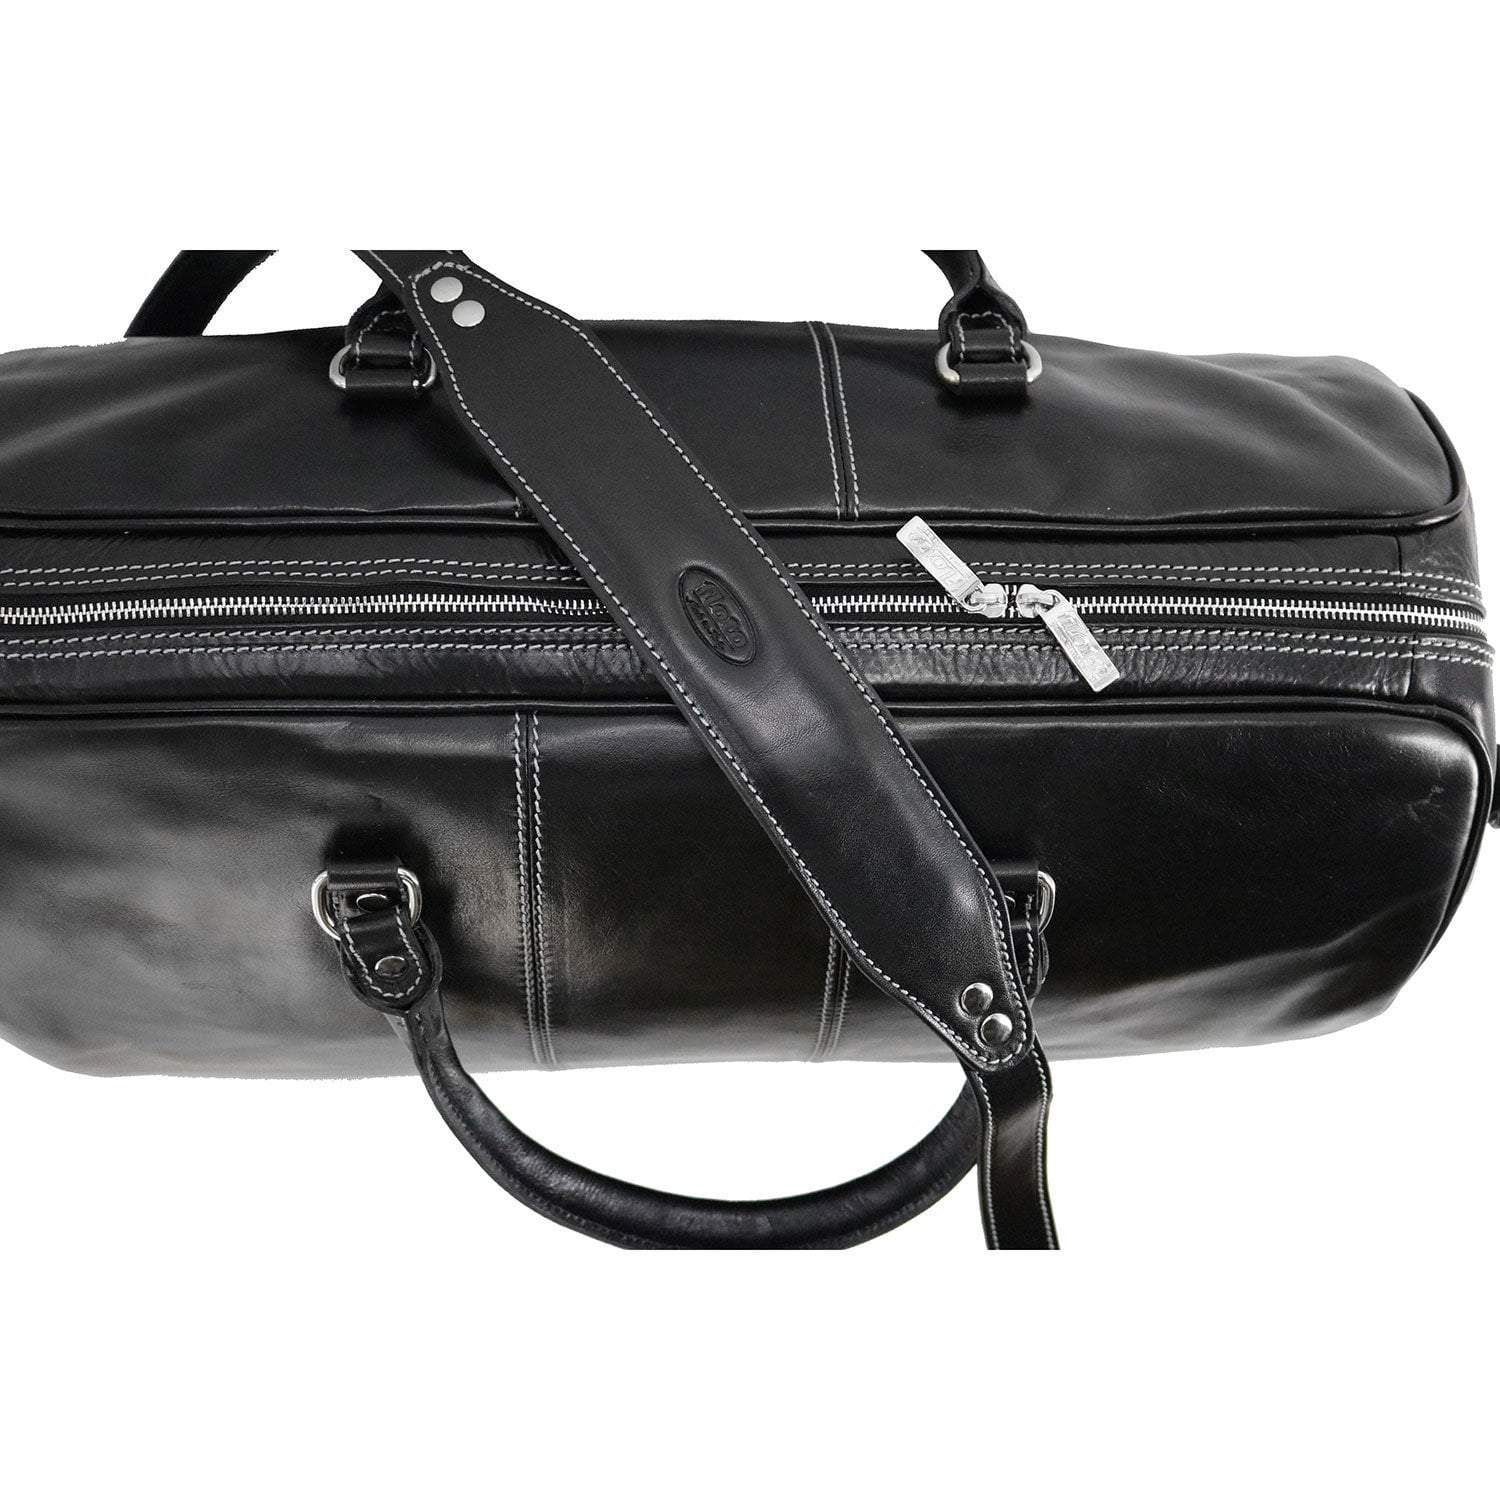 Floto Venezia Leather Travel Duffle Bag 2.0 - Black